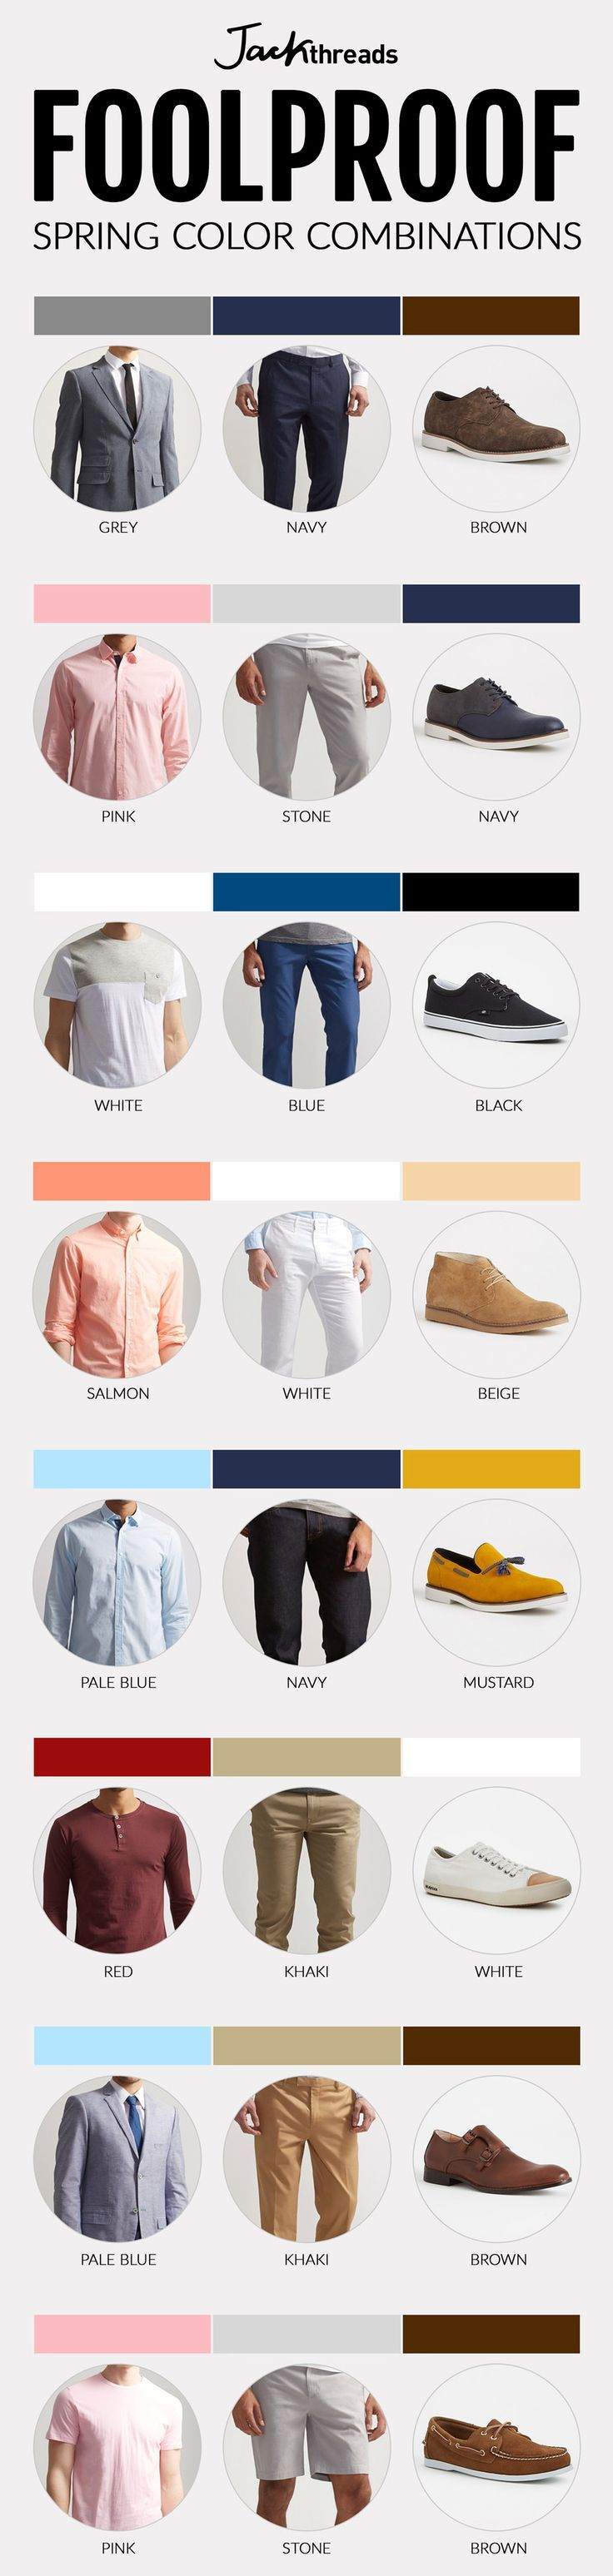 Like what you see? Upgrade your style at http://www.MensStyleLab.com